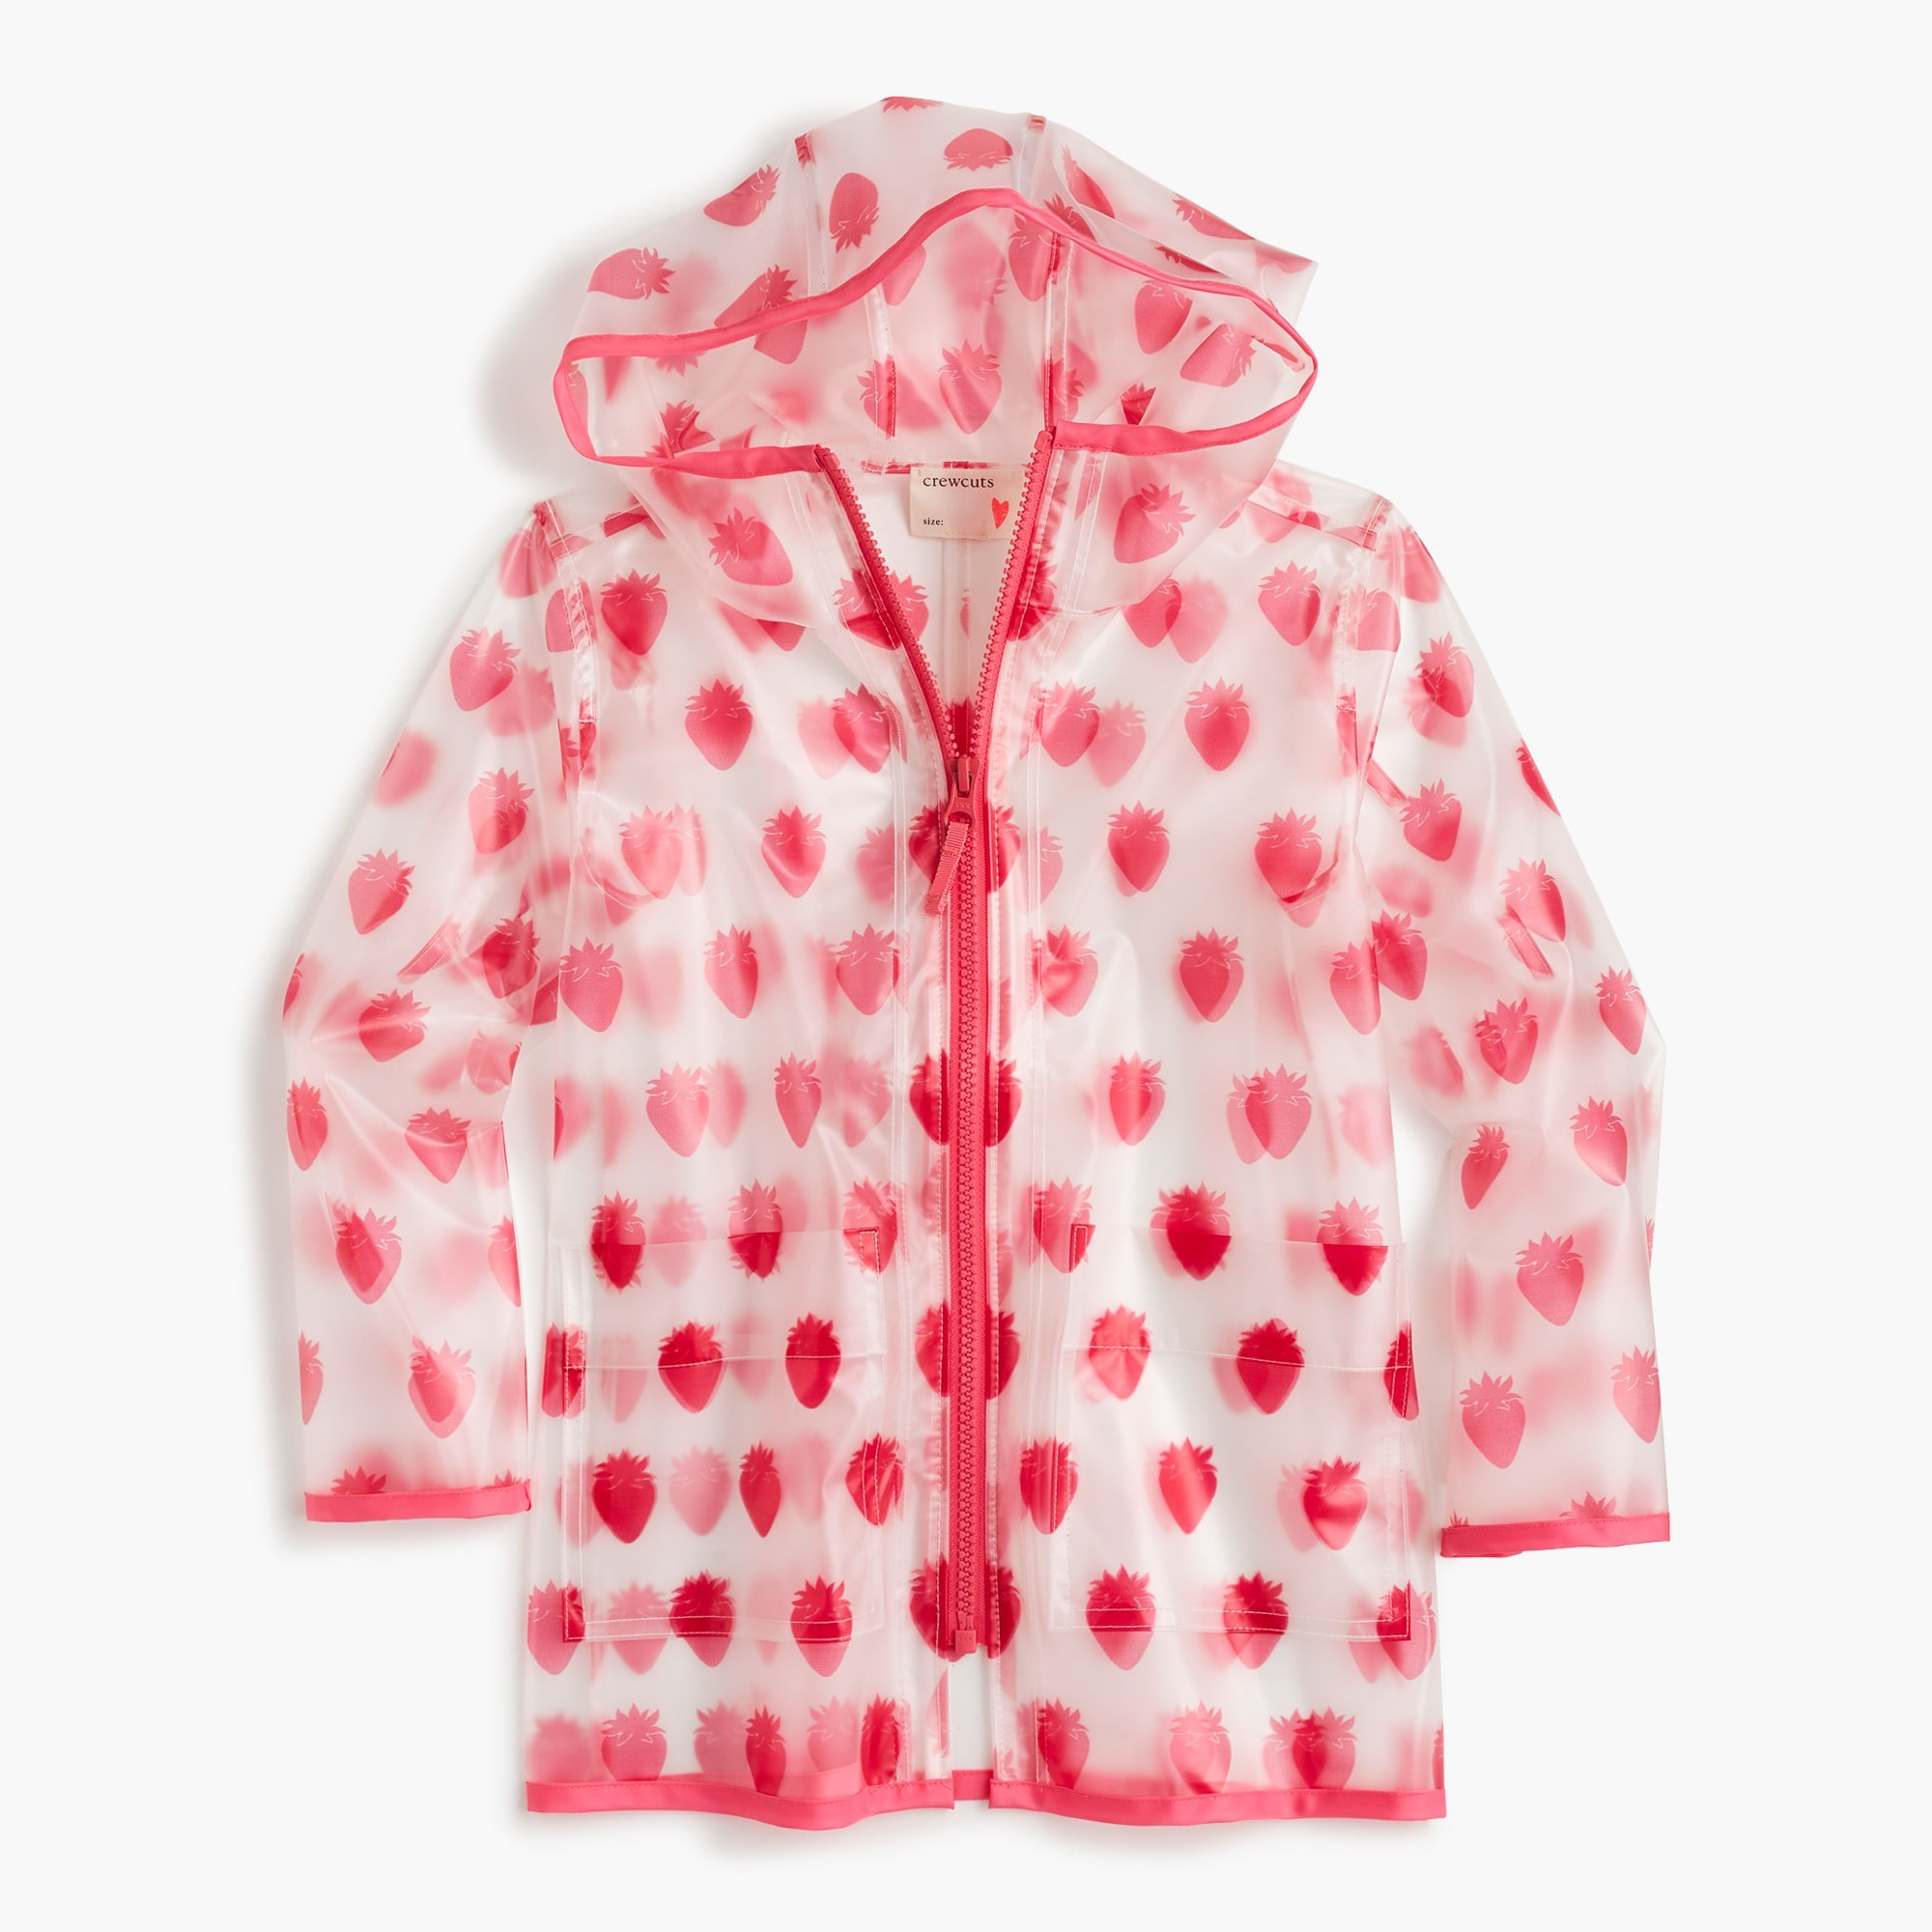 Kids' rain jacket in coral print girl coats & jackets c